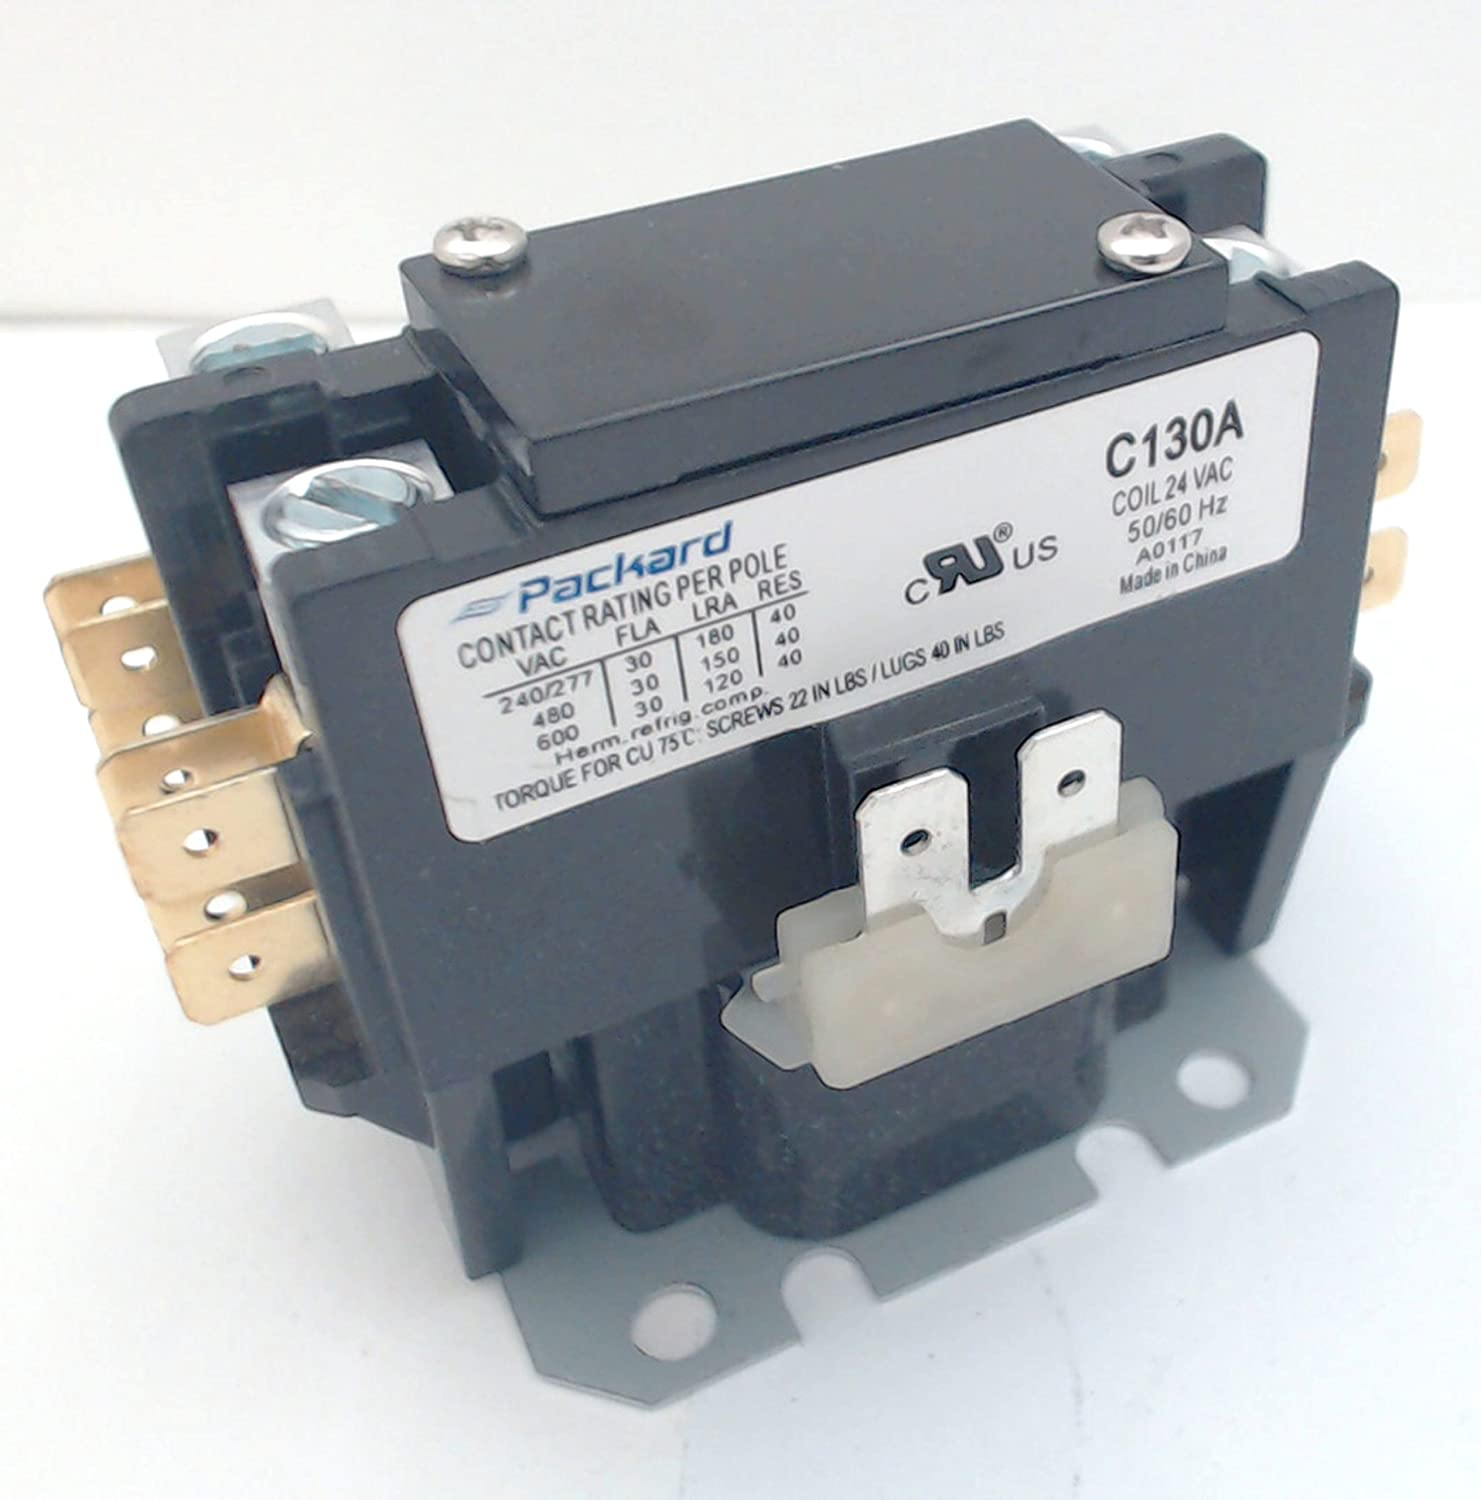 Amazon.com: Packard Contactor C130A 1 Pole 30 Amps 24 Coil Voltage 4.5 Out  of 5 Stars 44: Industrial & ScientificAmazon.com